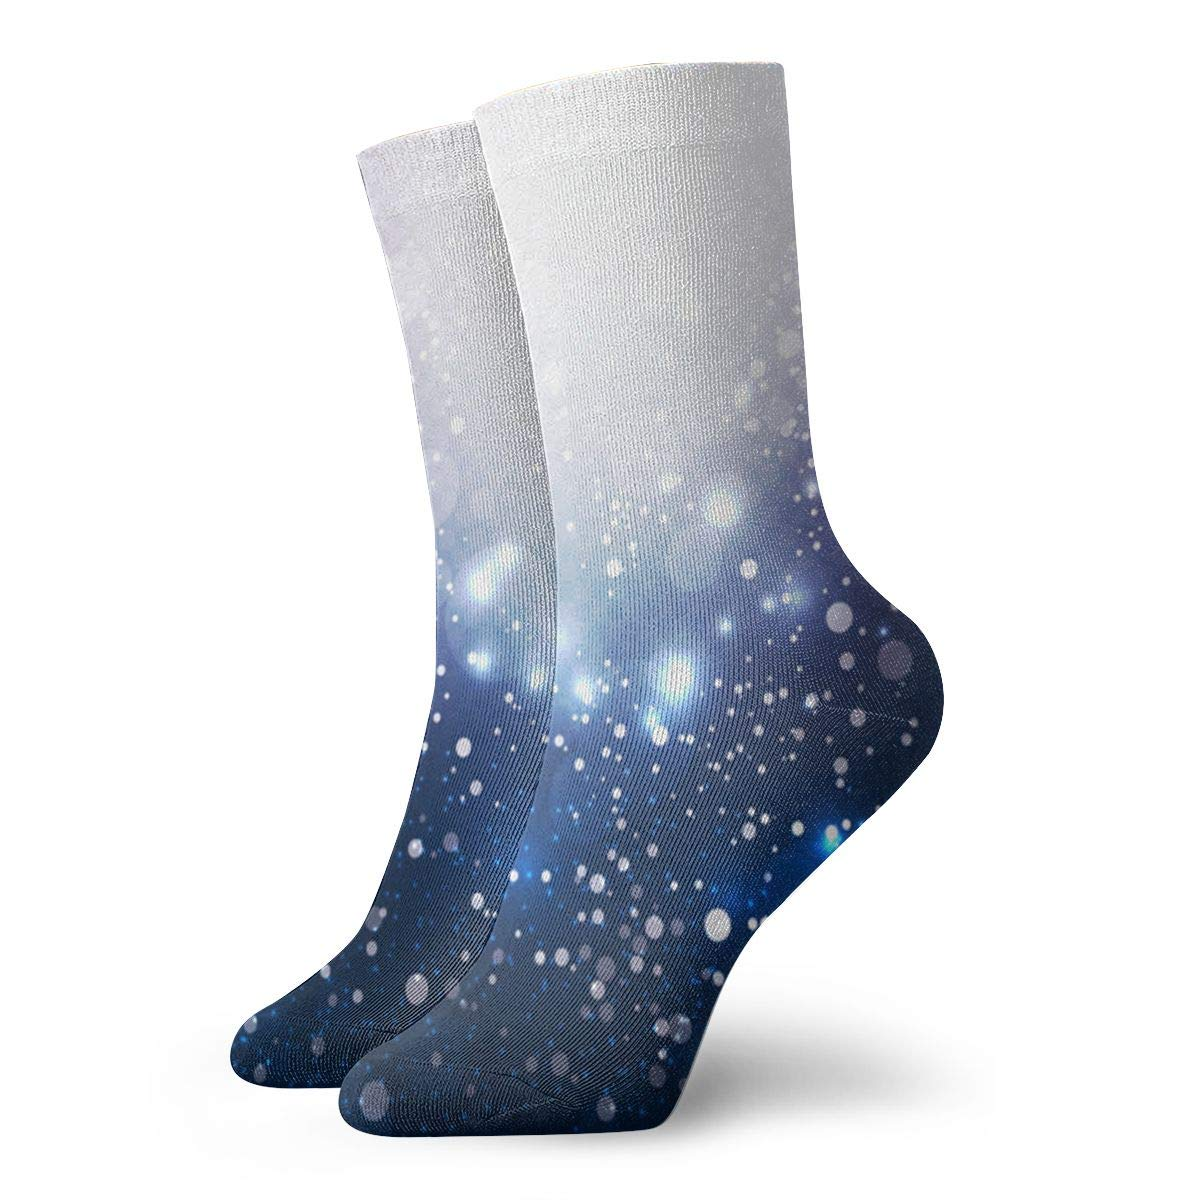 Bubble-lights Unisex Funny Casual Crew Socks Athletic Socks For Boys Girls Kids Teenagers